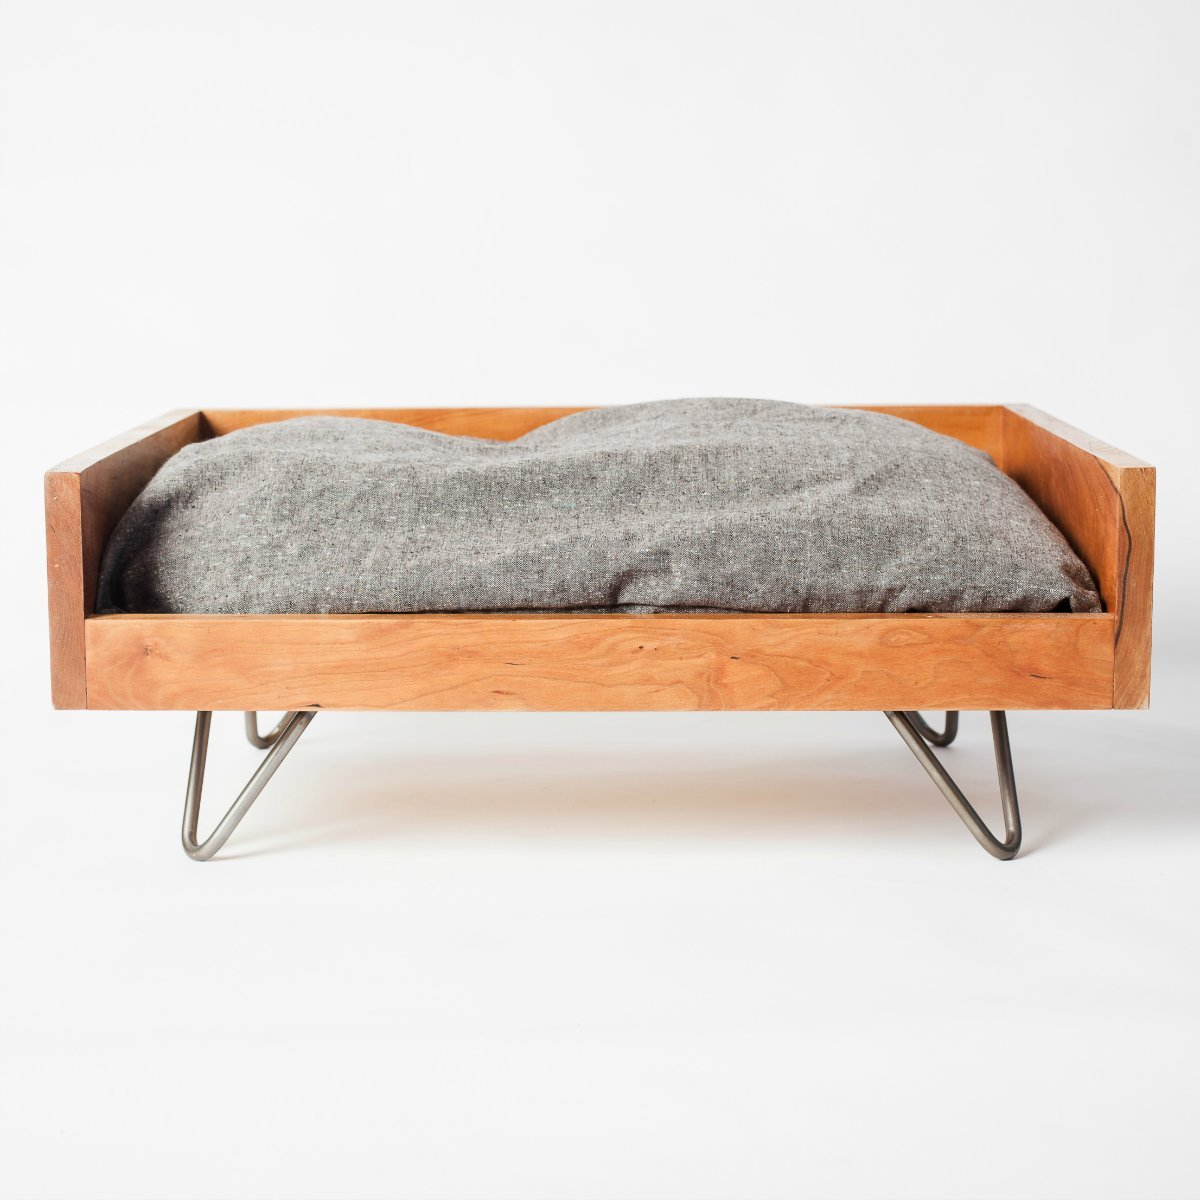 Pillow Sized Pet FURniture Washable, Durable, Elevated, Modern, Cherry Wood